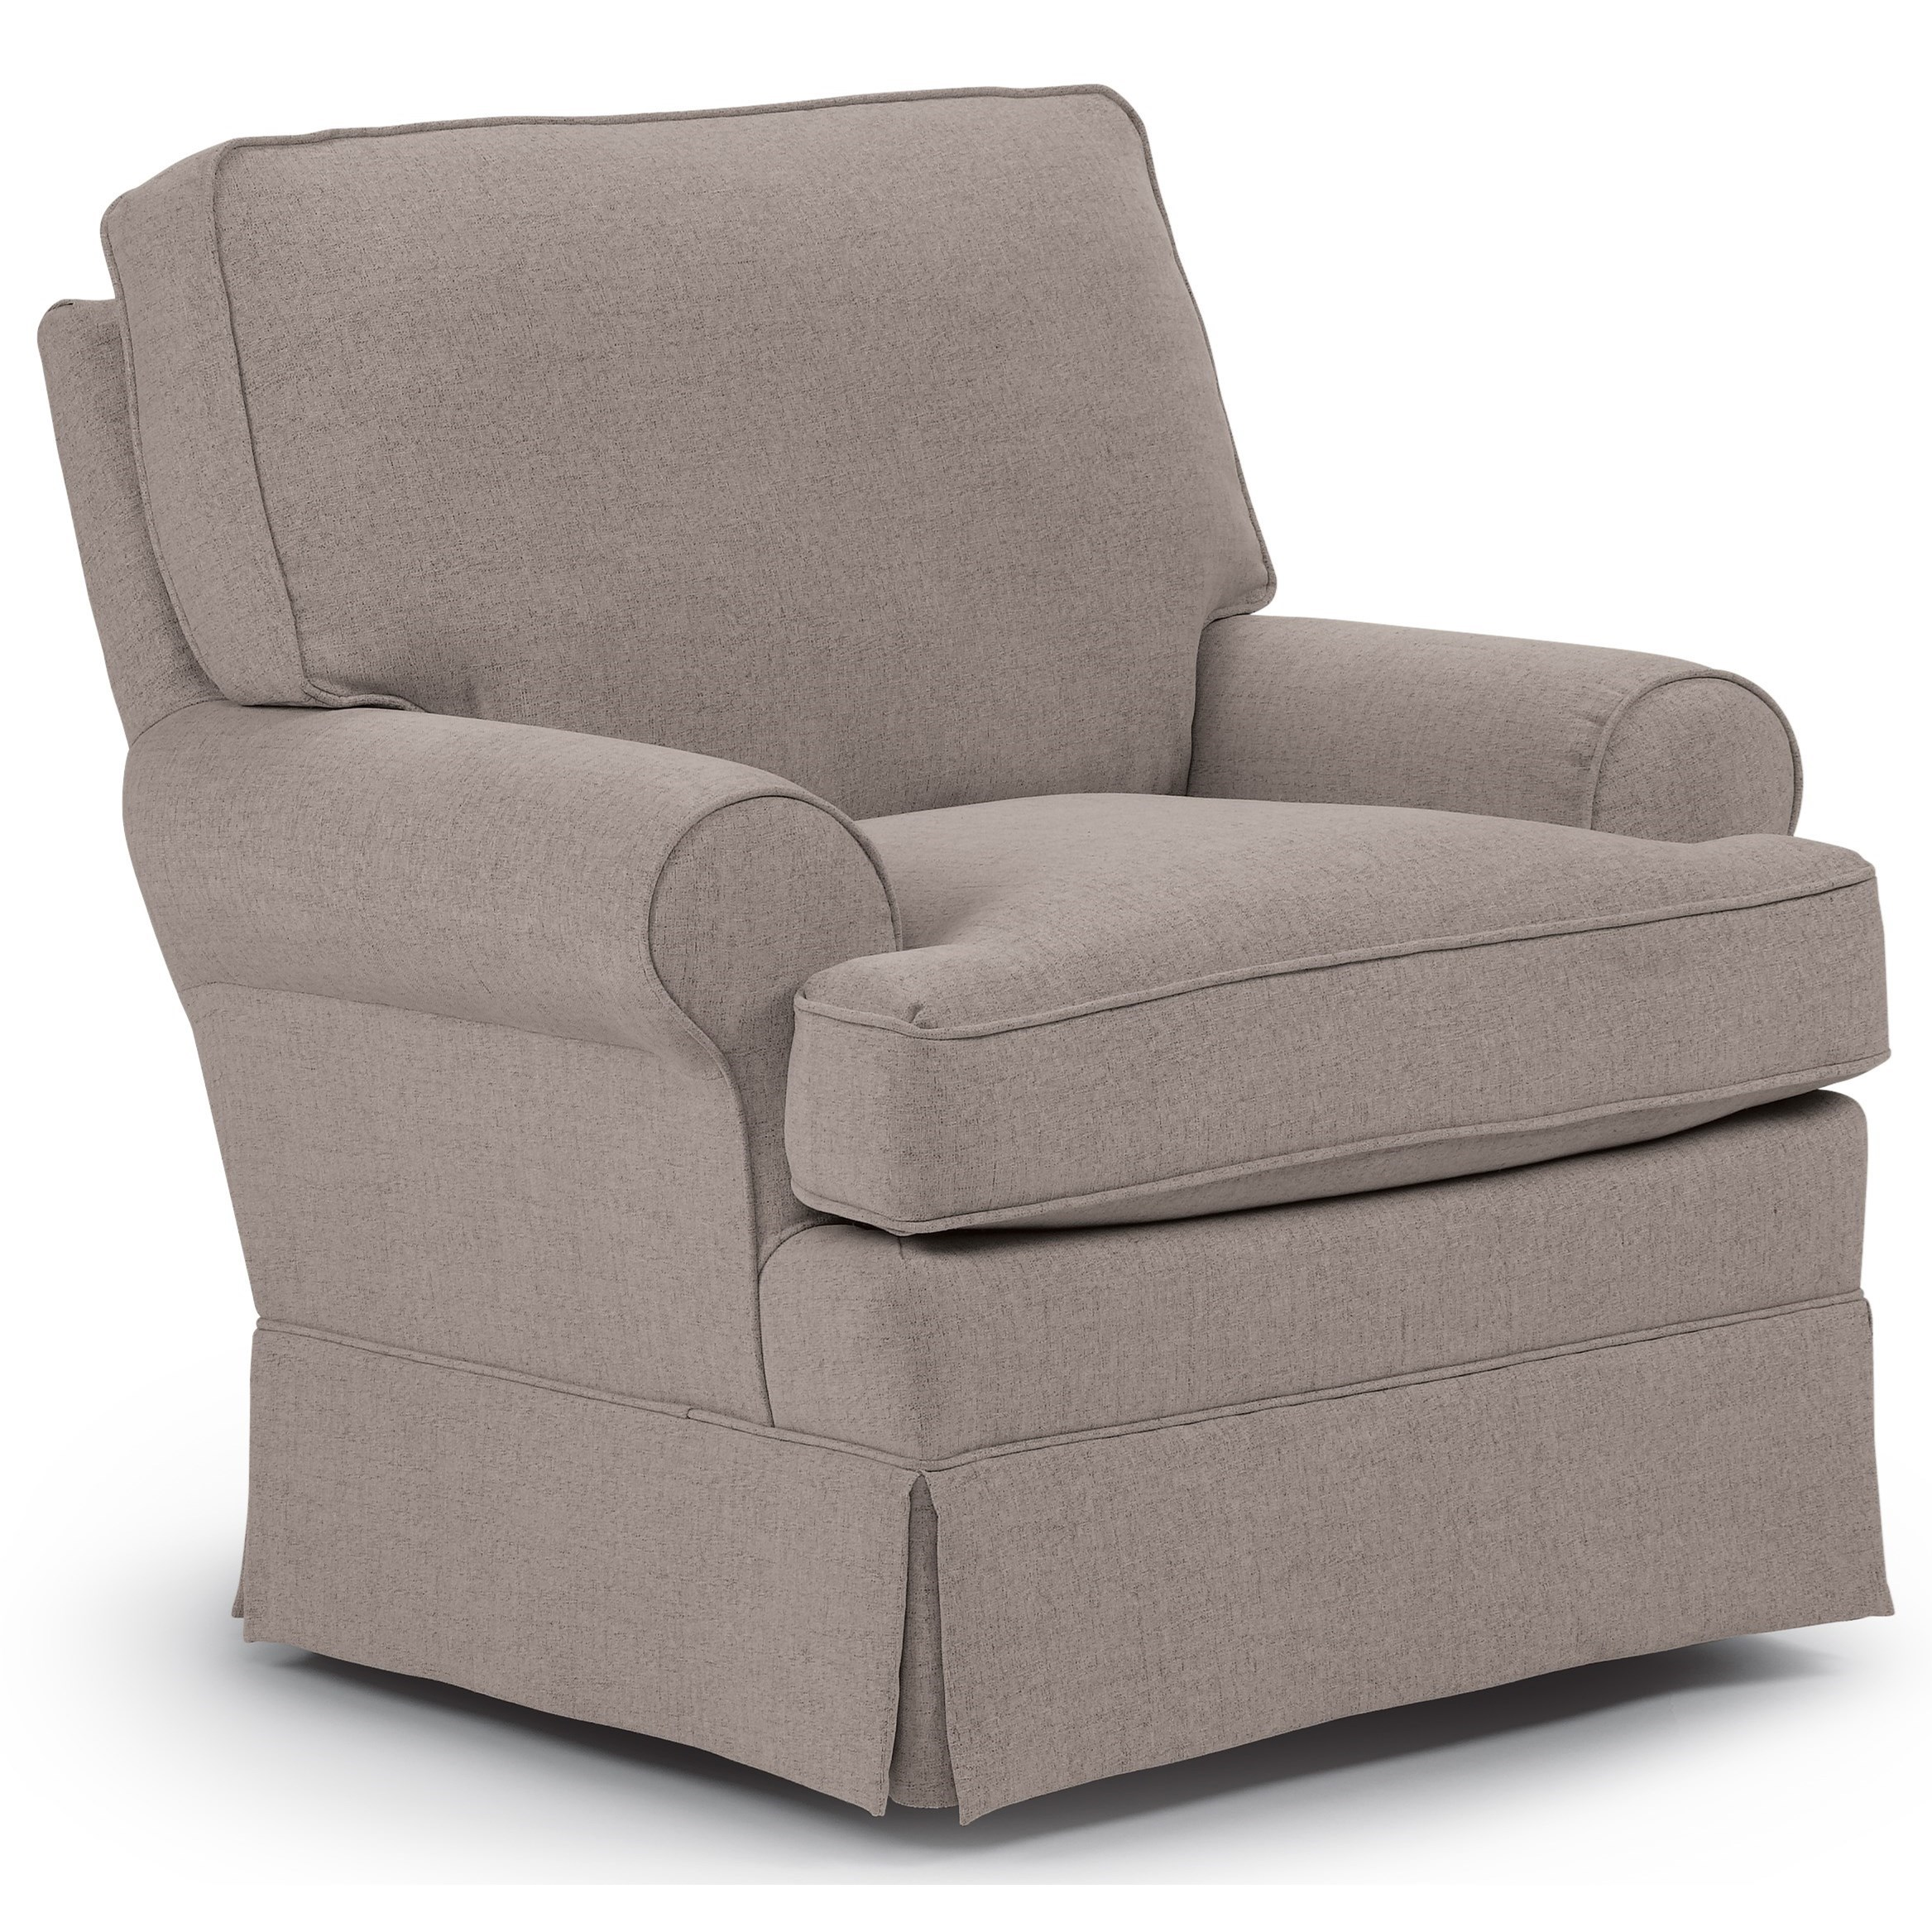 Best Home Furnishings Chairs Swivel Glide Quinn Swivel Glider Chair With Welt Cord Trim